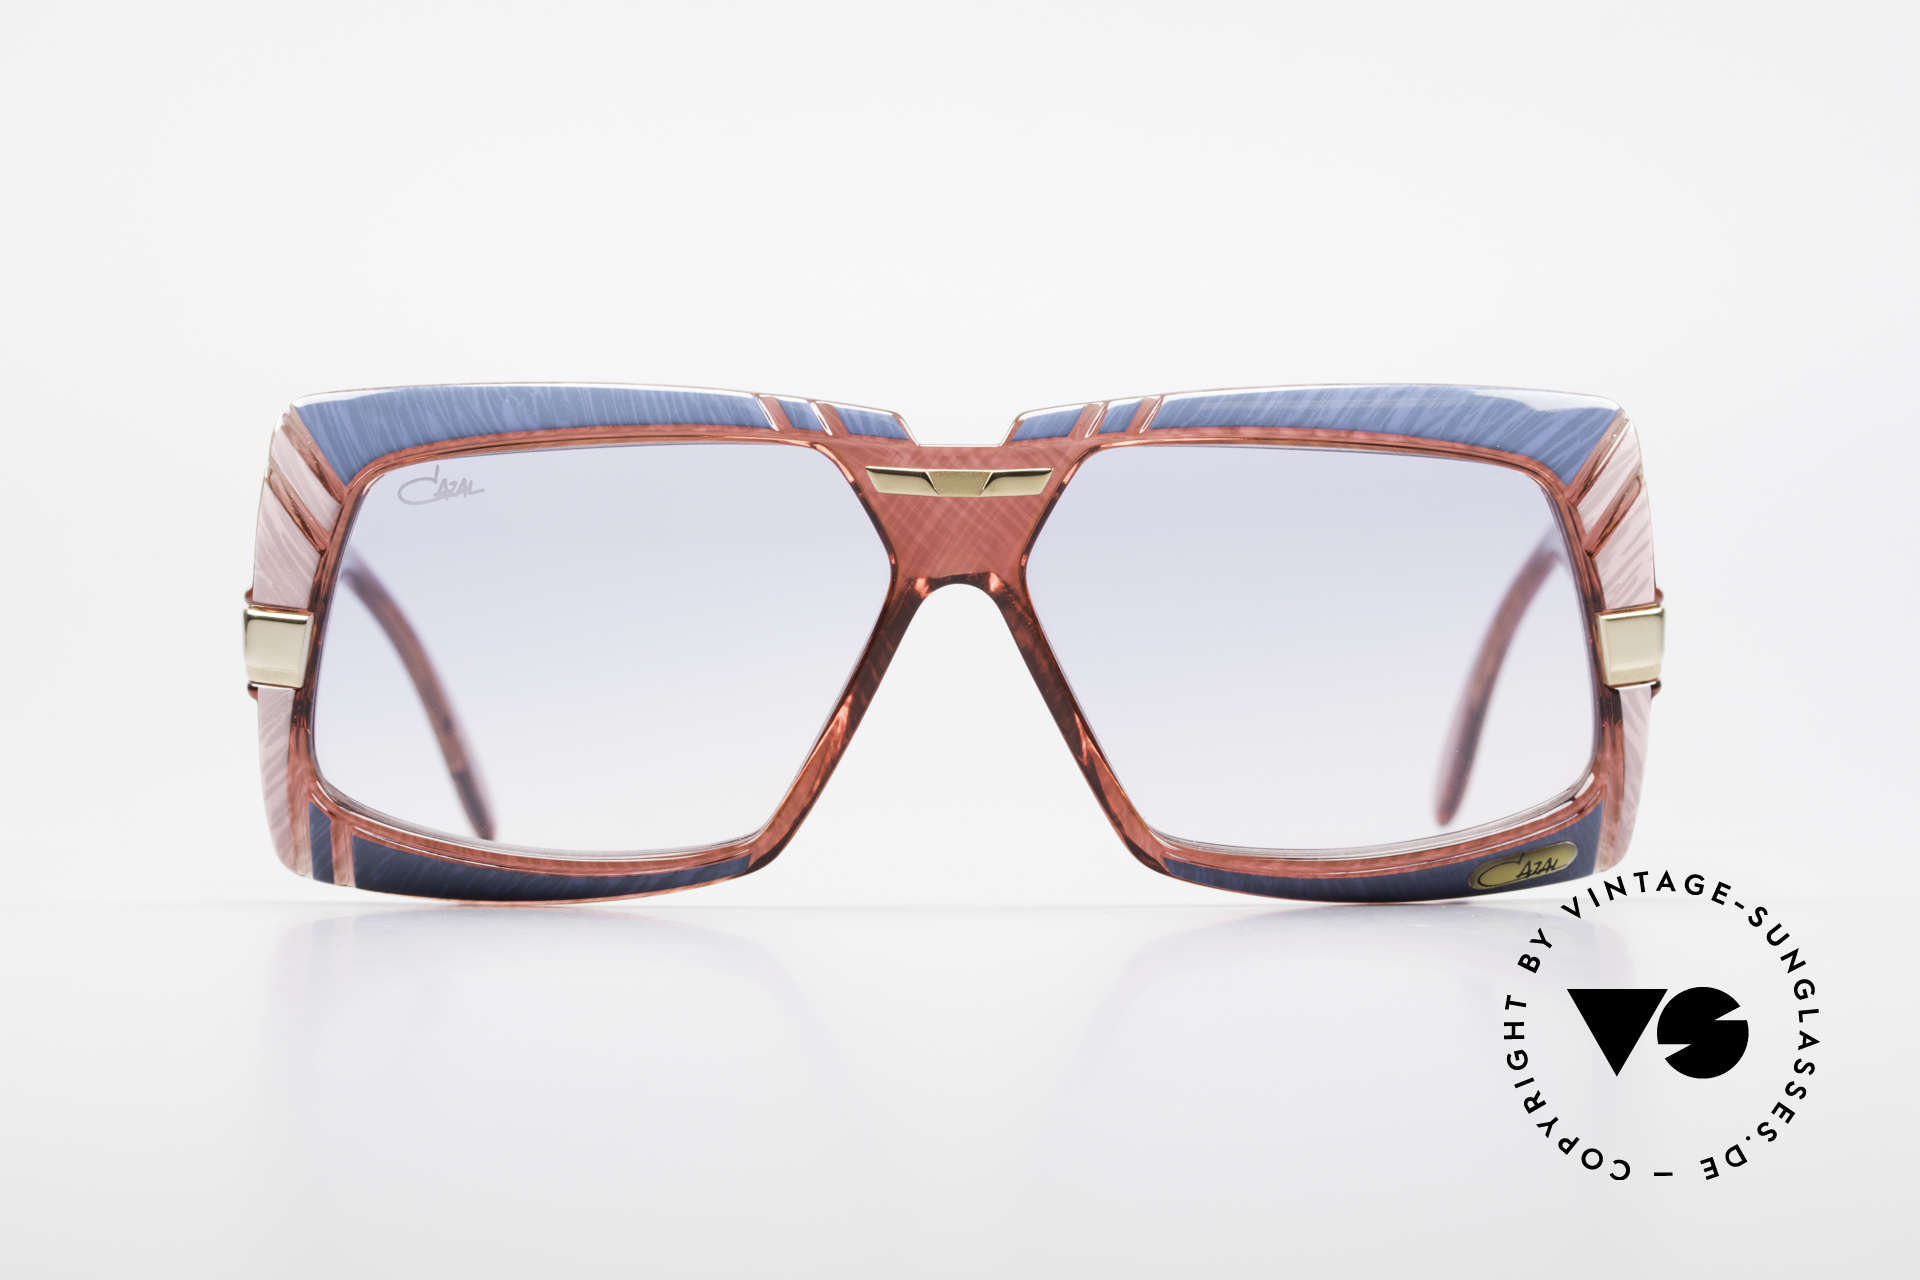 Cazal 869 80's Cazal Designer Shades, great combination of shapes, colors and materials, Made for Men and Women